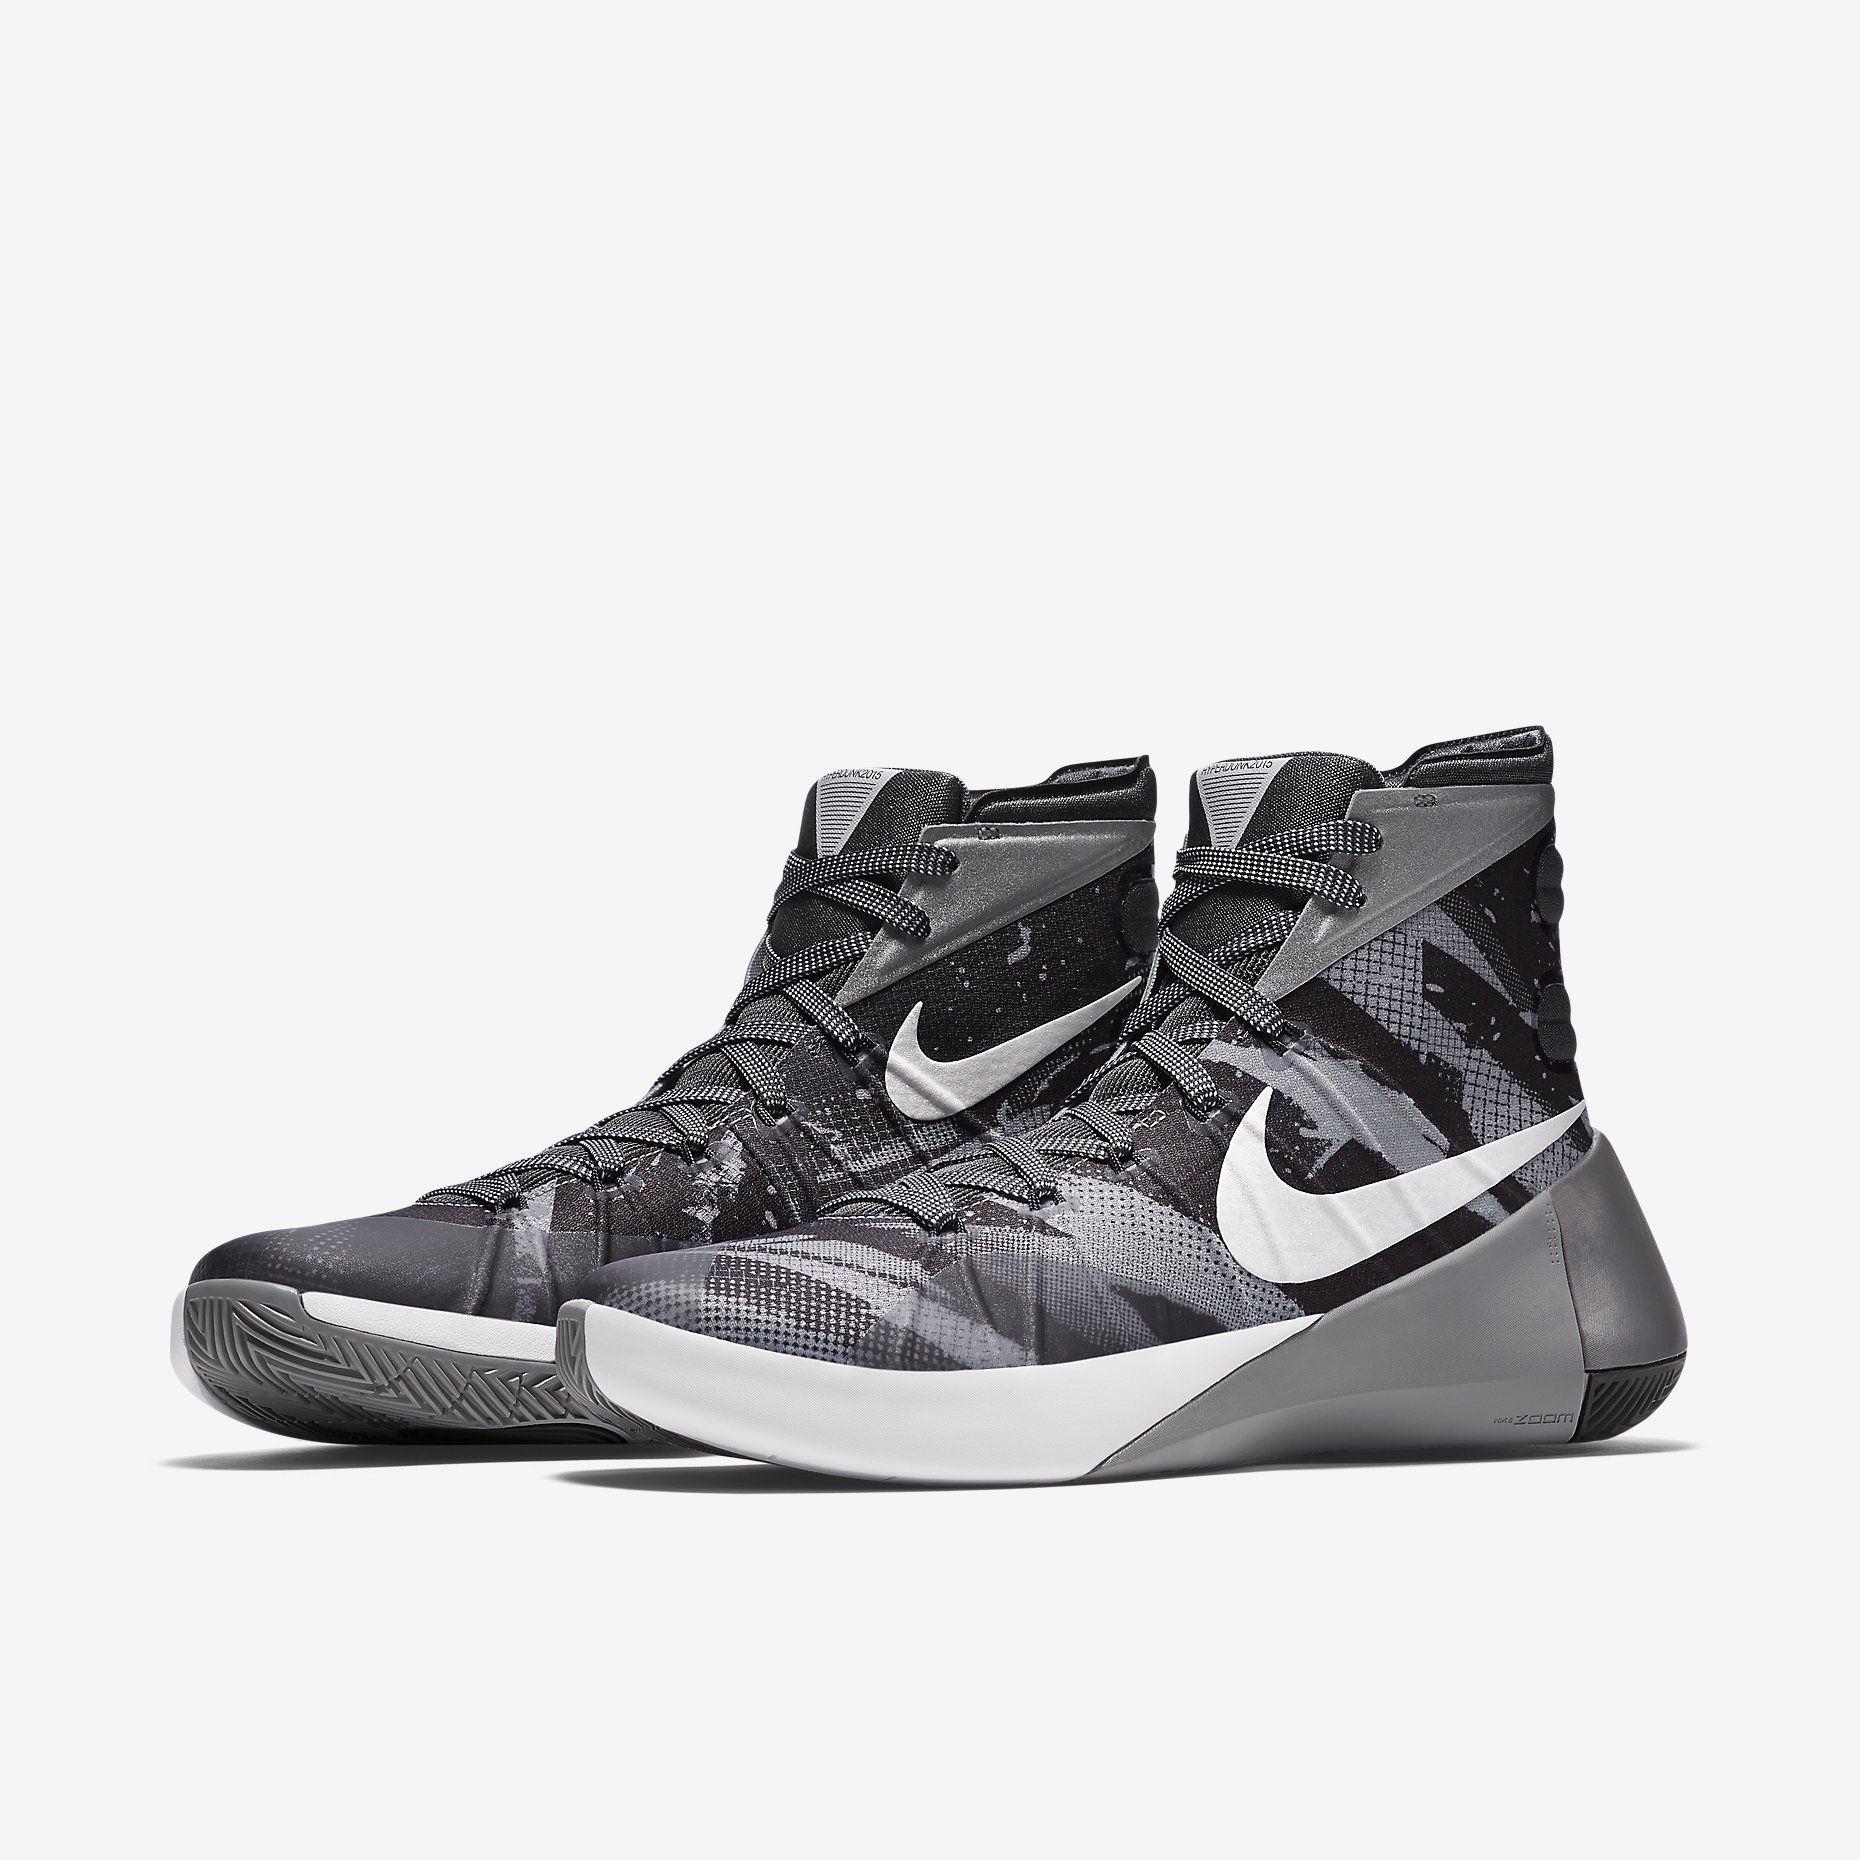 beneficio pulmón Stevenson  Nike Hyperdunk 2015 Premium Zapatillas de baloncesto - Hombre. Nike Store  ES | Girls basketball shoes, Nike shoes women, Running shoes nike